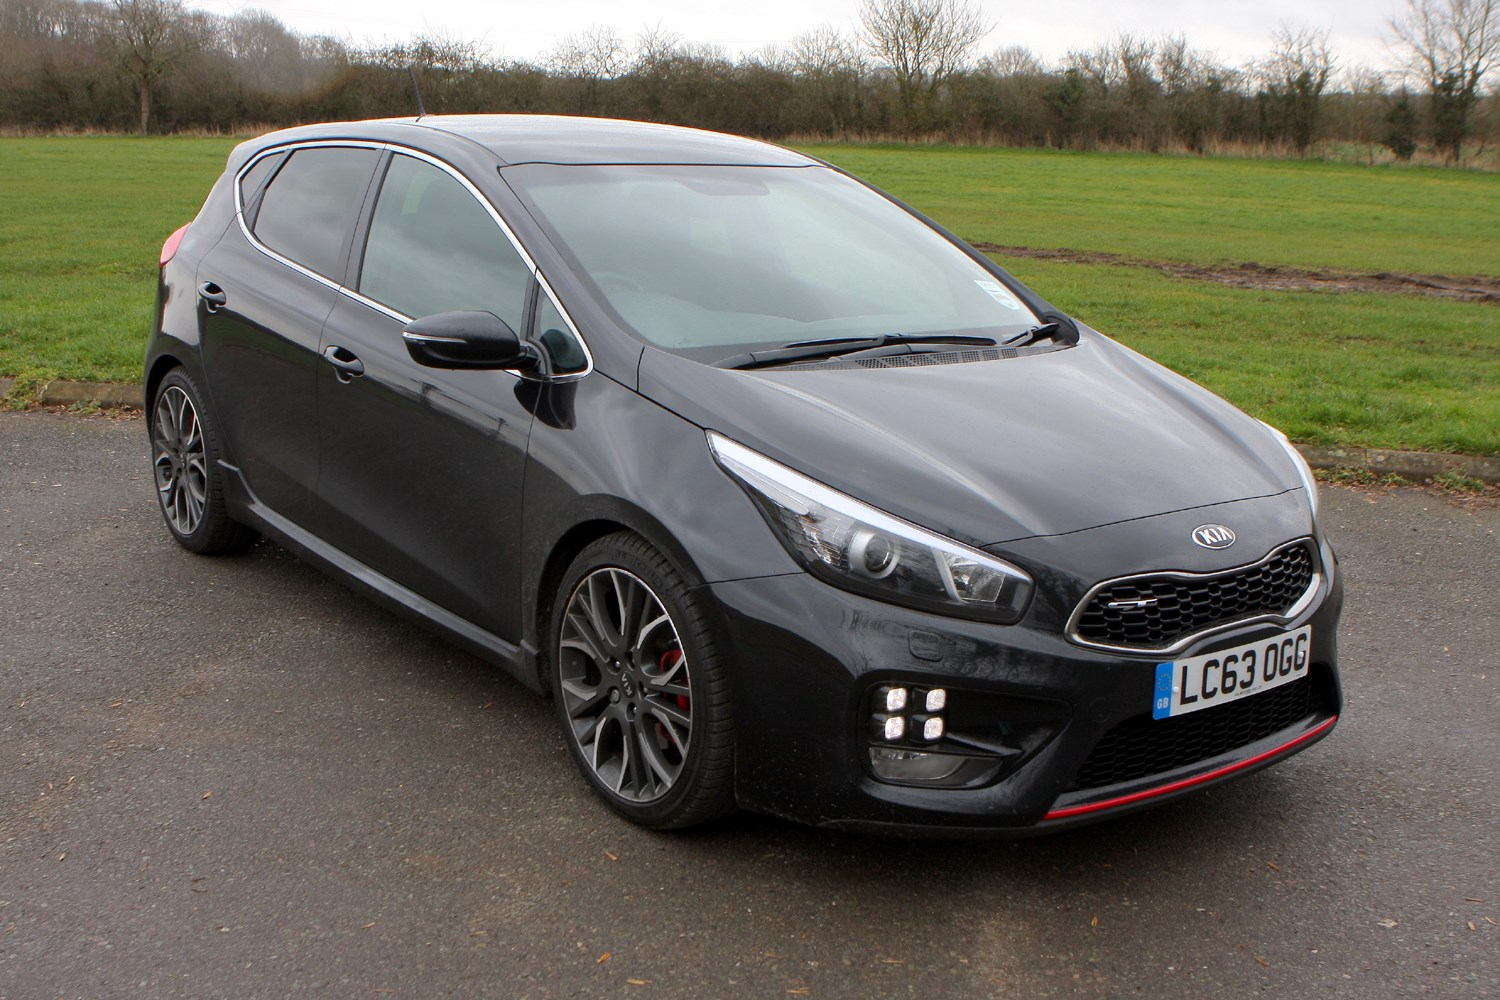 Kia Ceed Gt Review 2013 Parkers